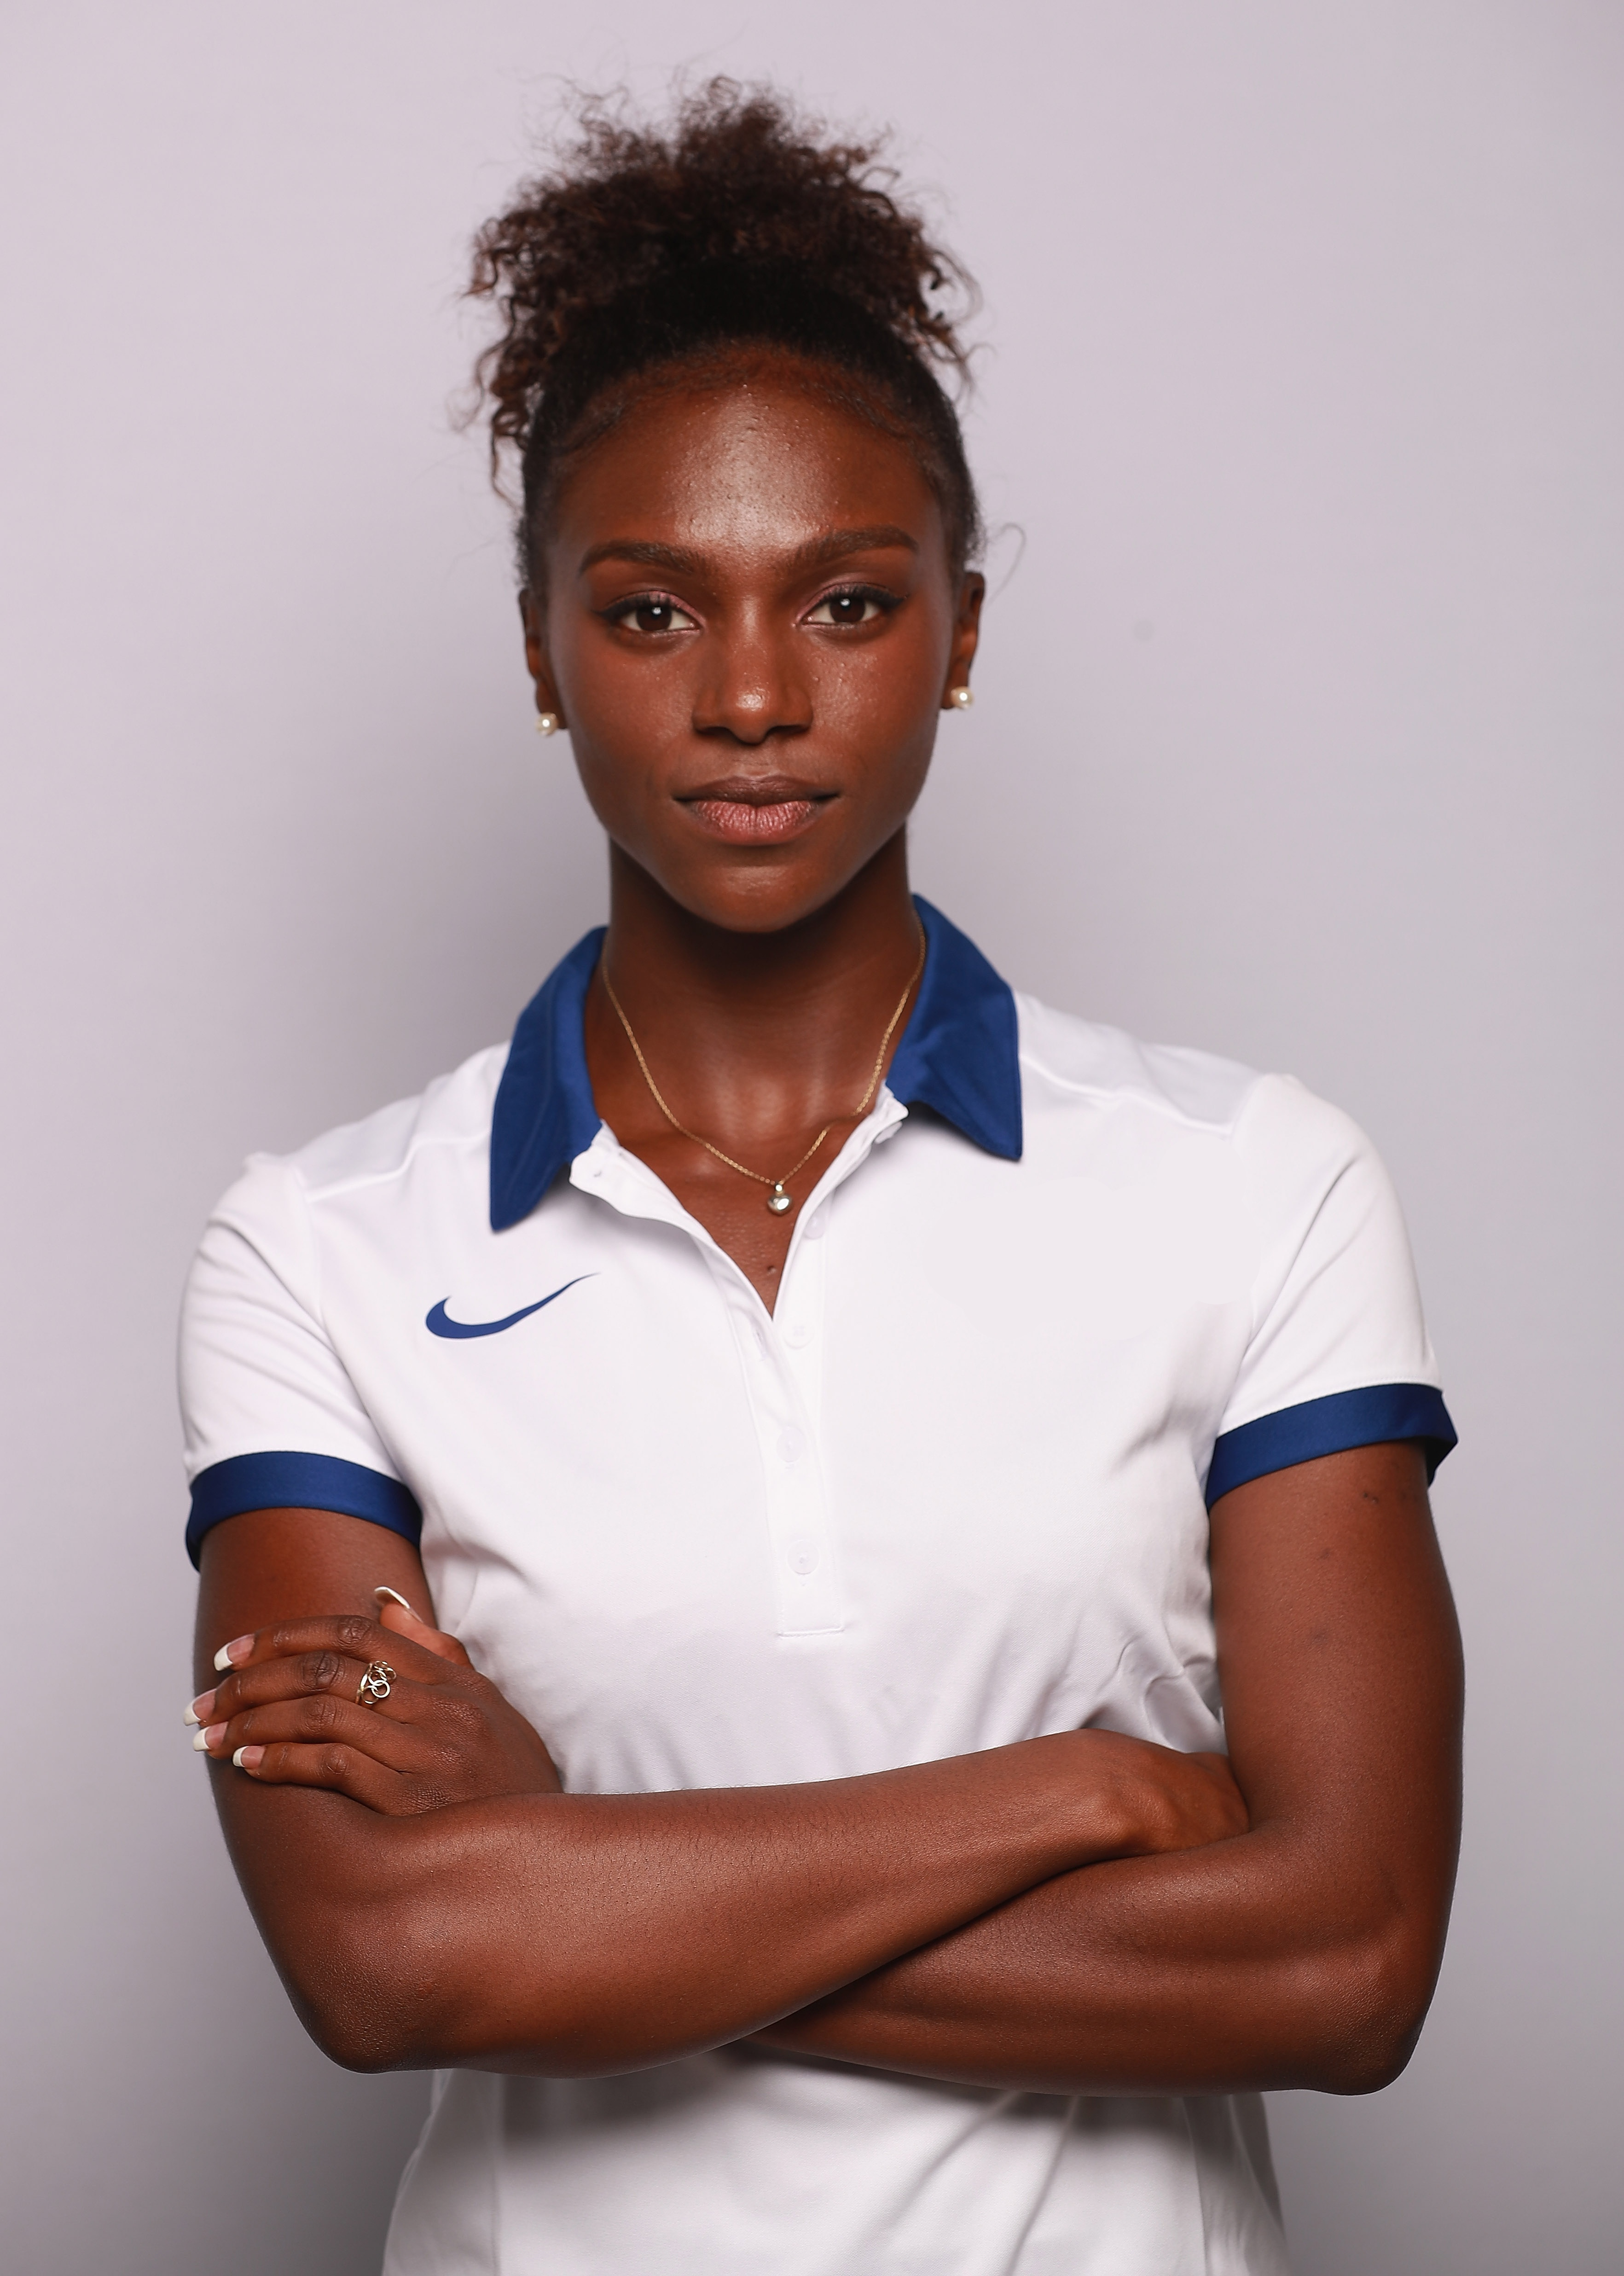 British Airways Run Gatwick | Dina Asher-Smith